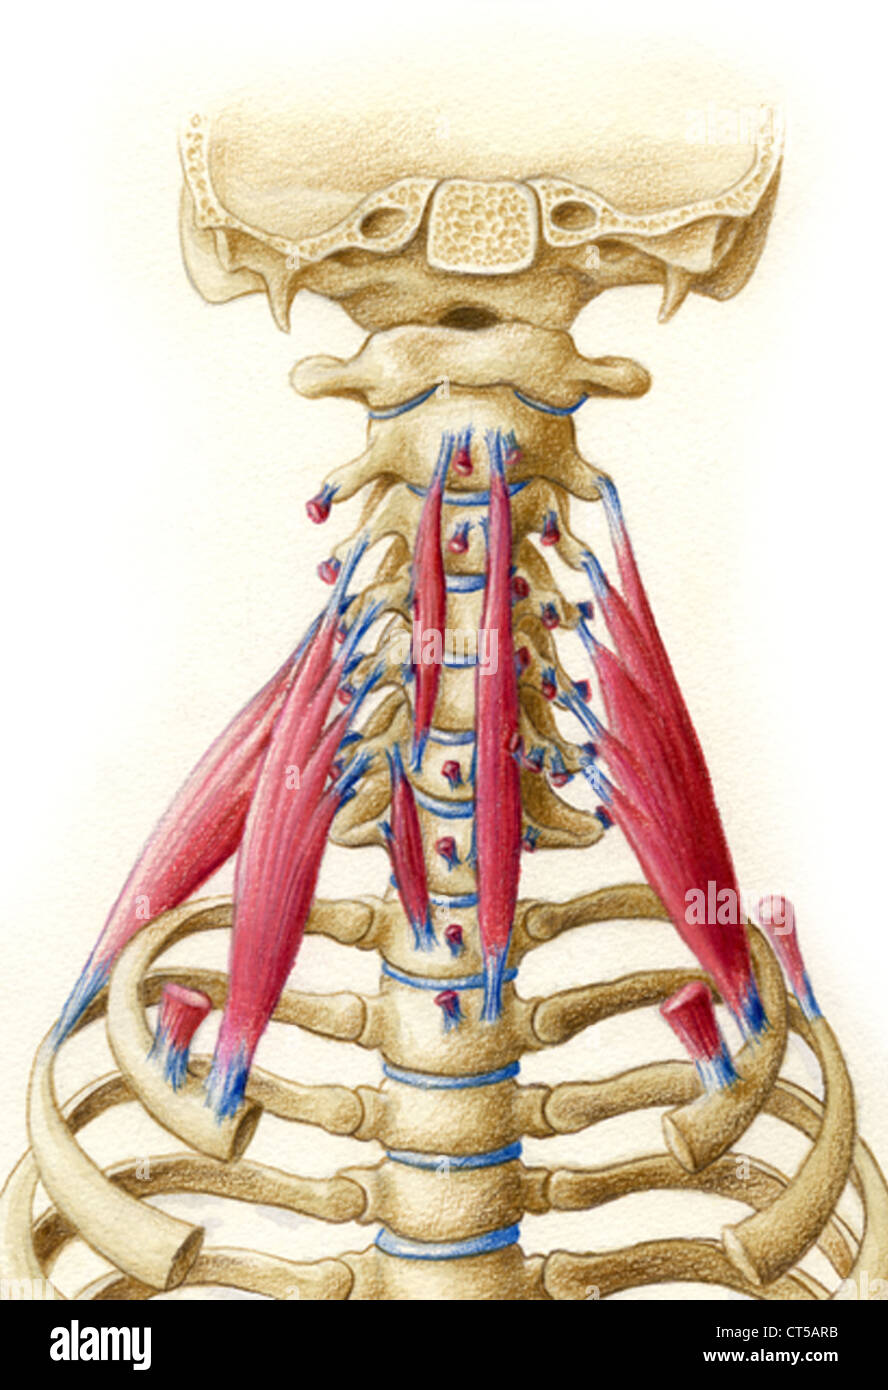 Normal Neck Bones Stock Photos Normal Neck Bones Stock Images Alamy